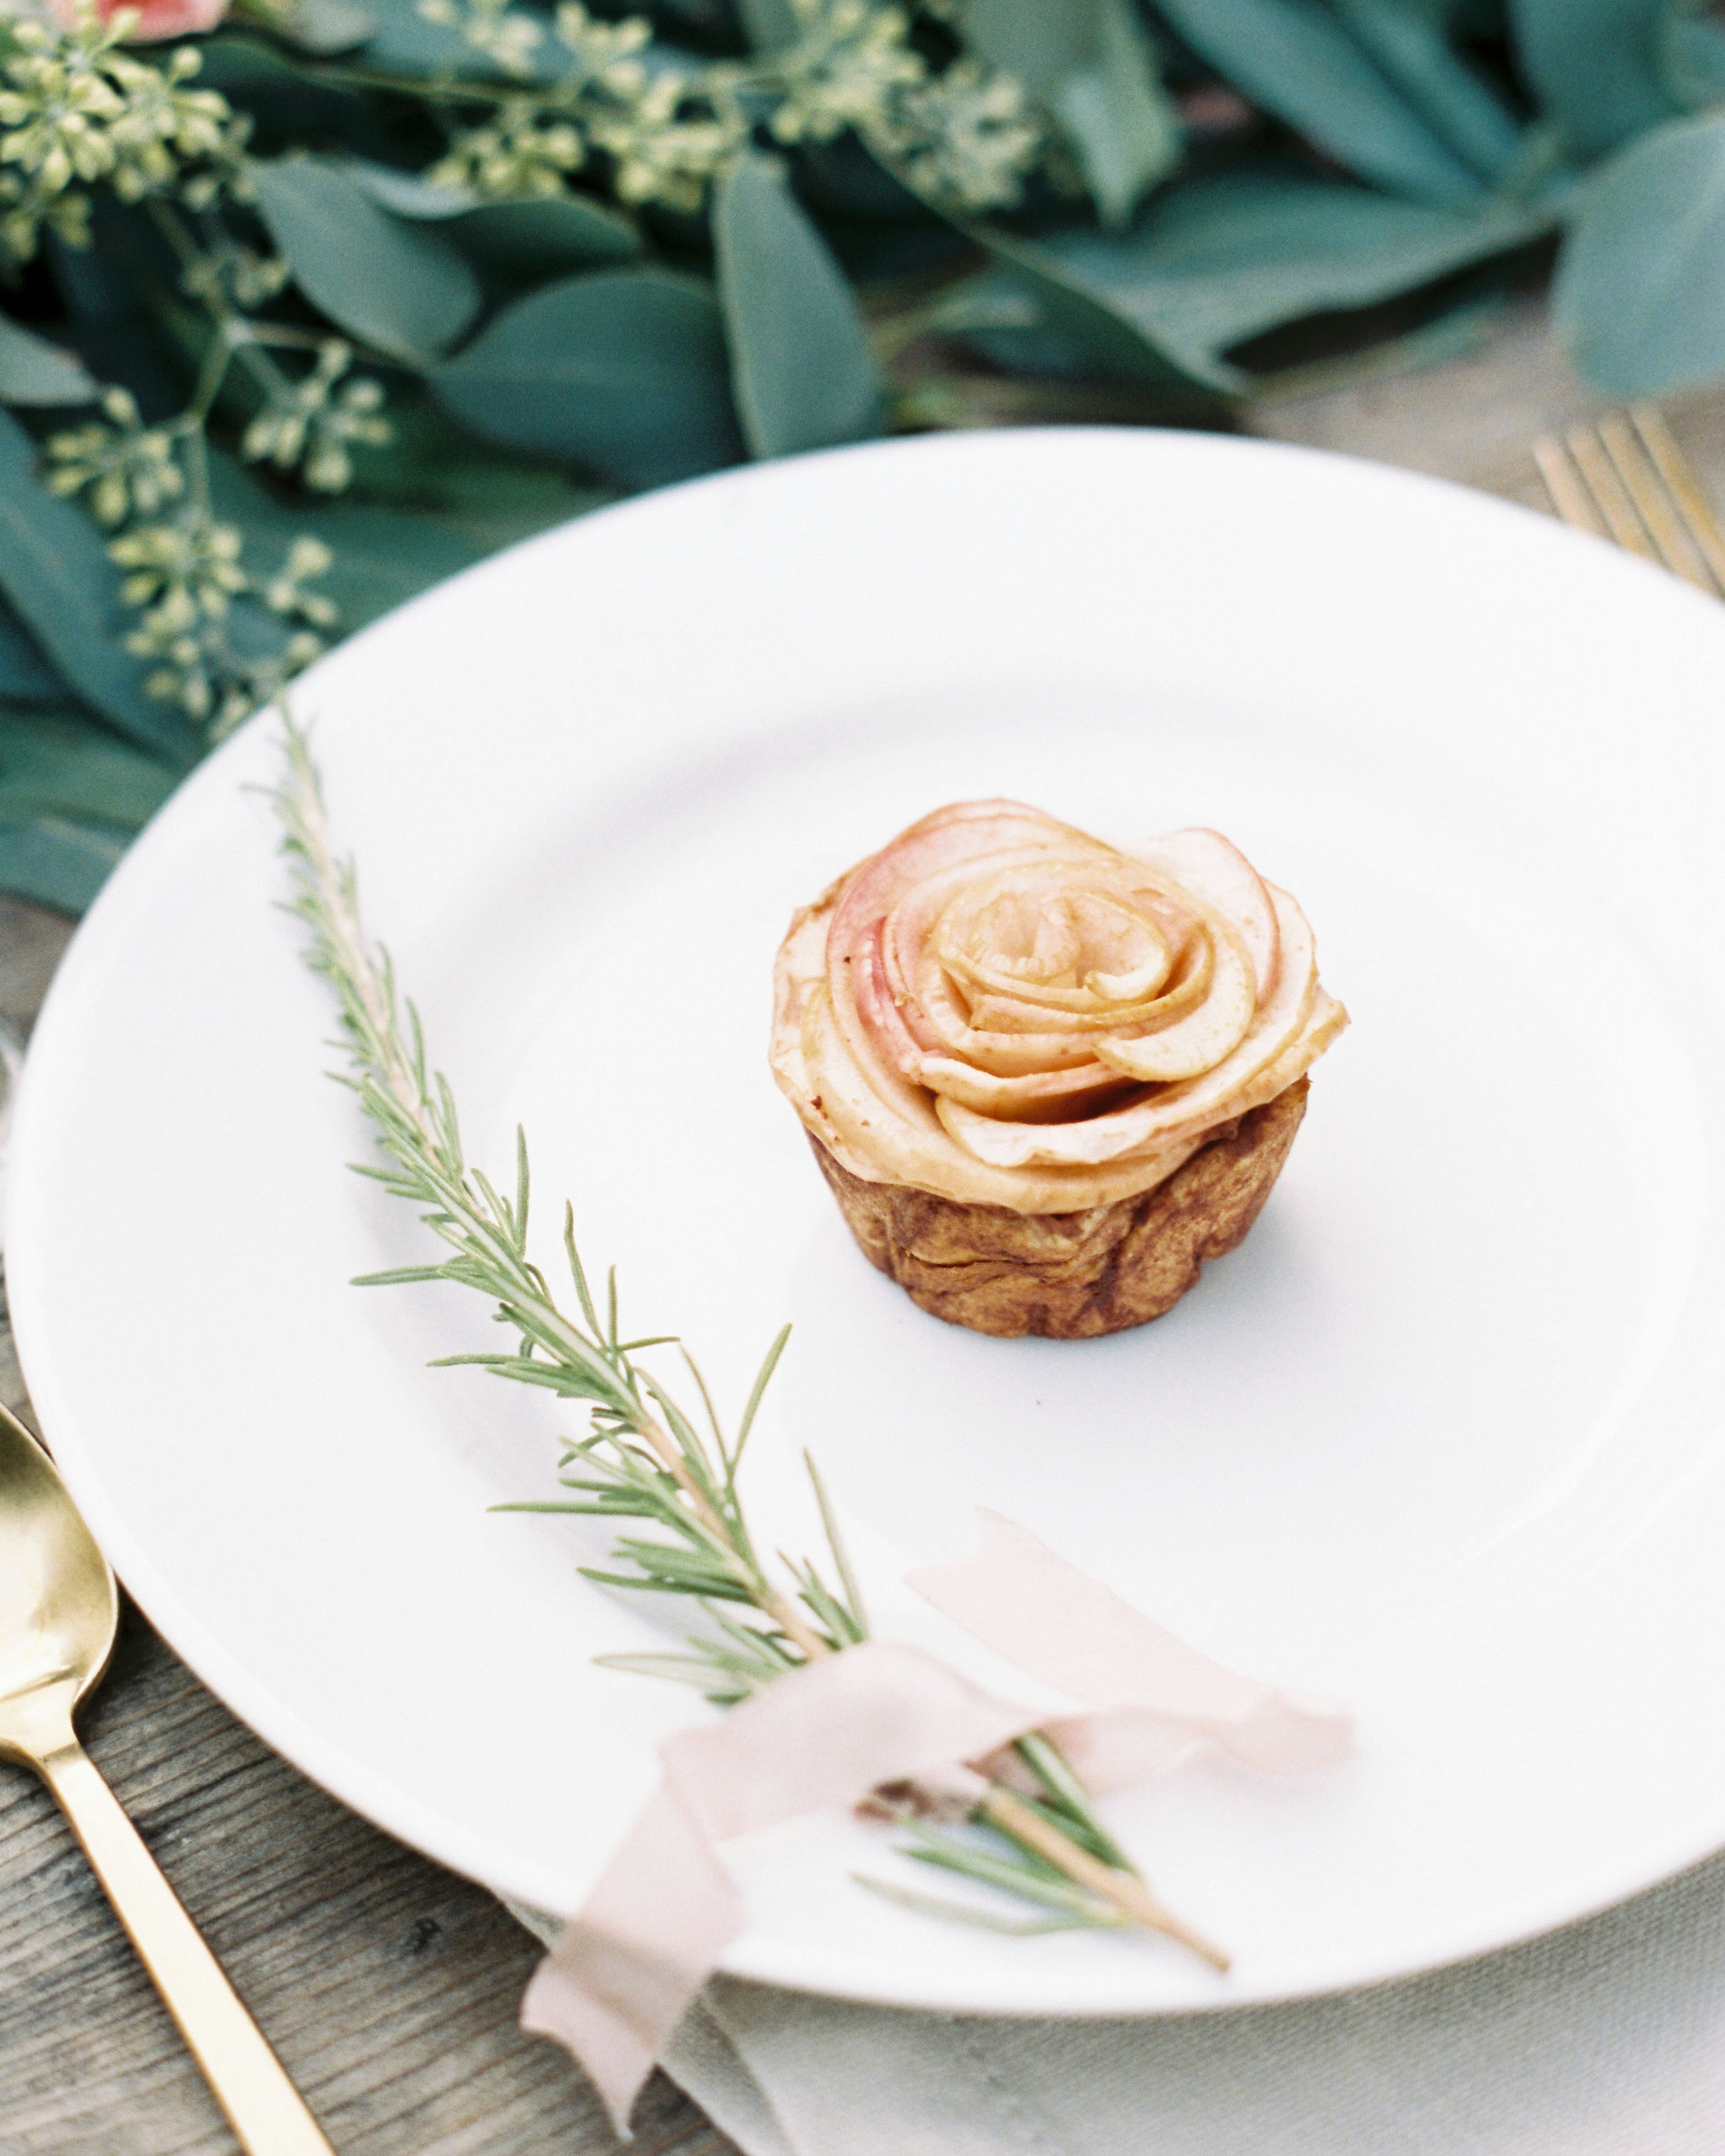 single dessert of white plate with greenery garnish and pink ribbon